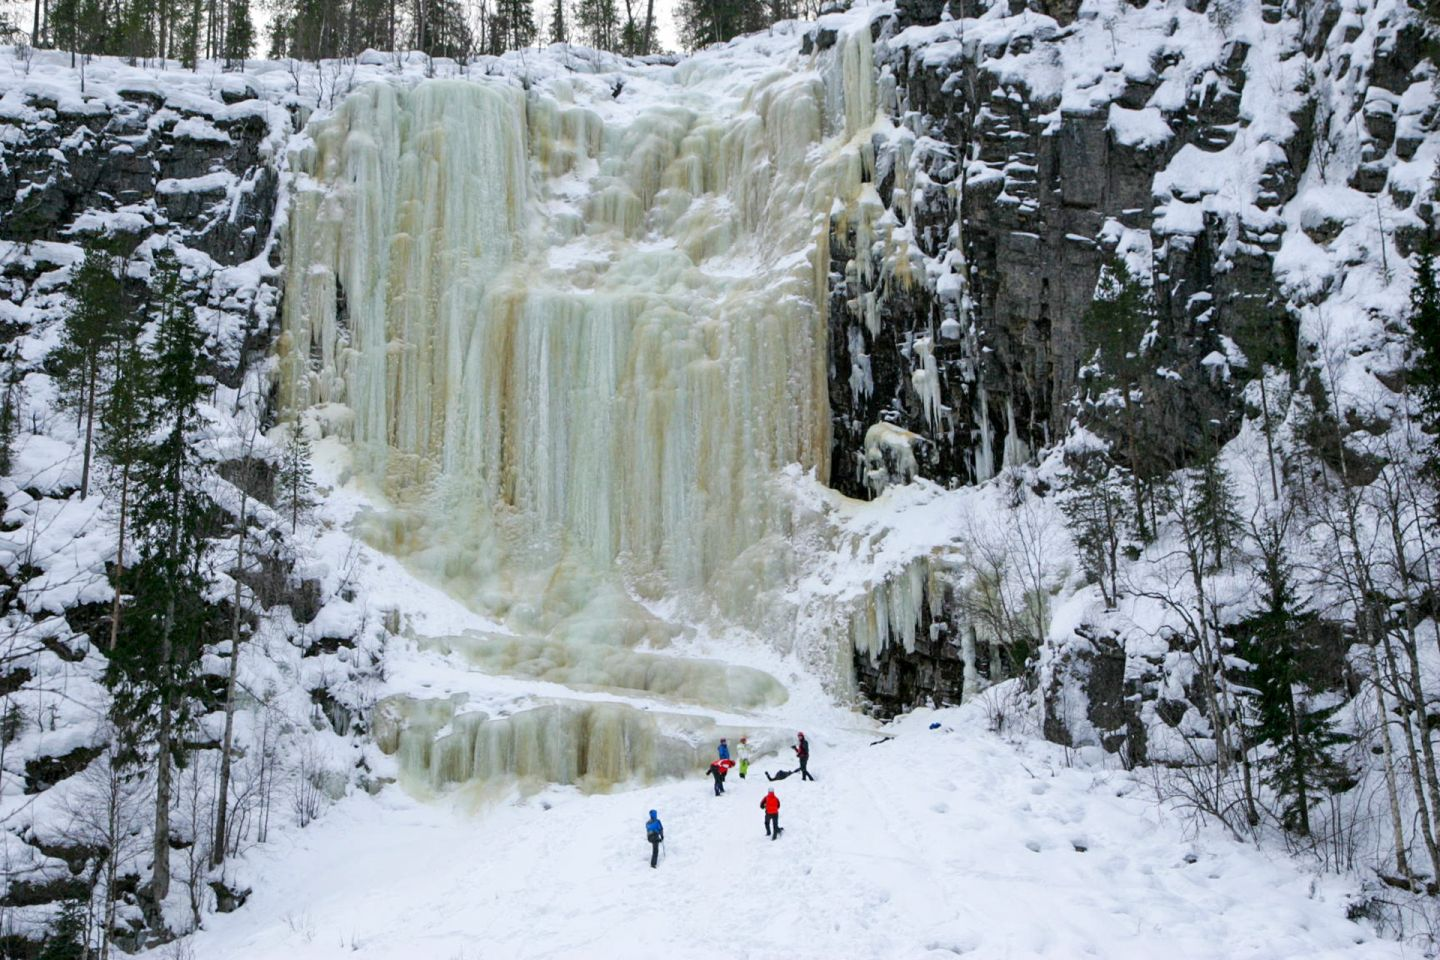 Huge frozen waterfall in Posio, Finnish Lapland